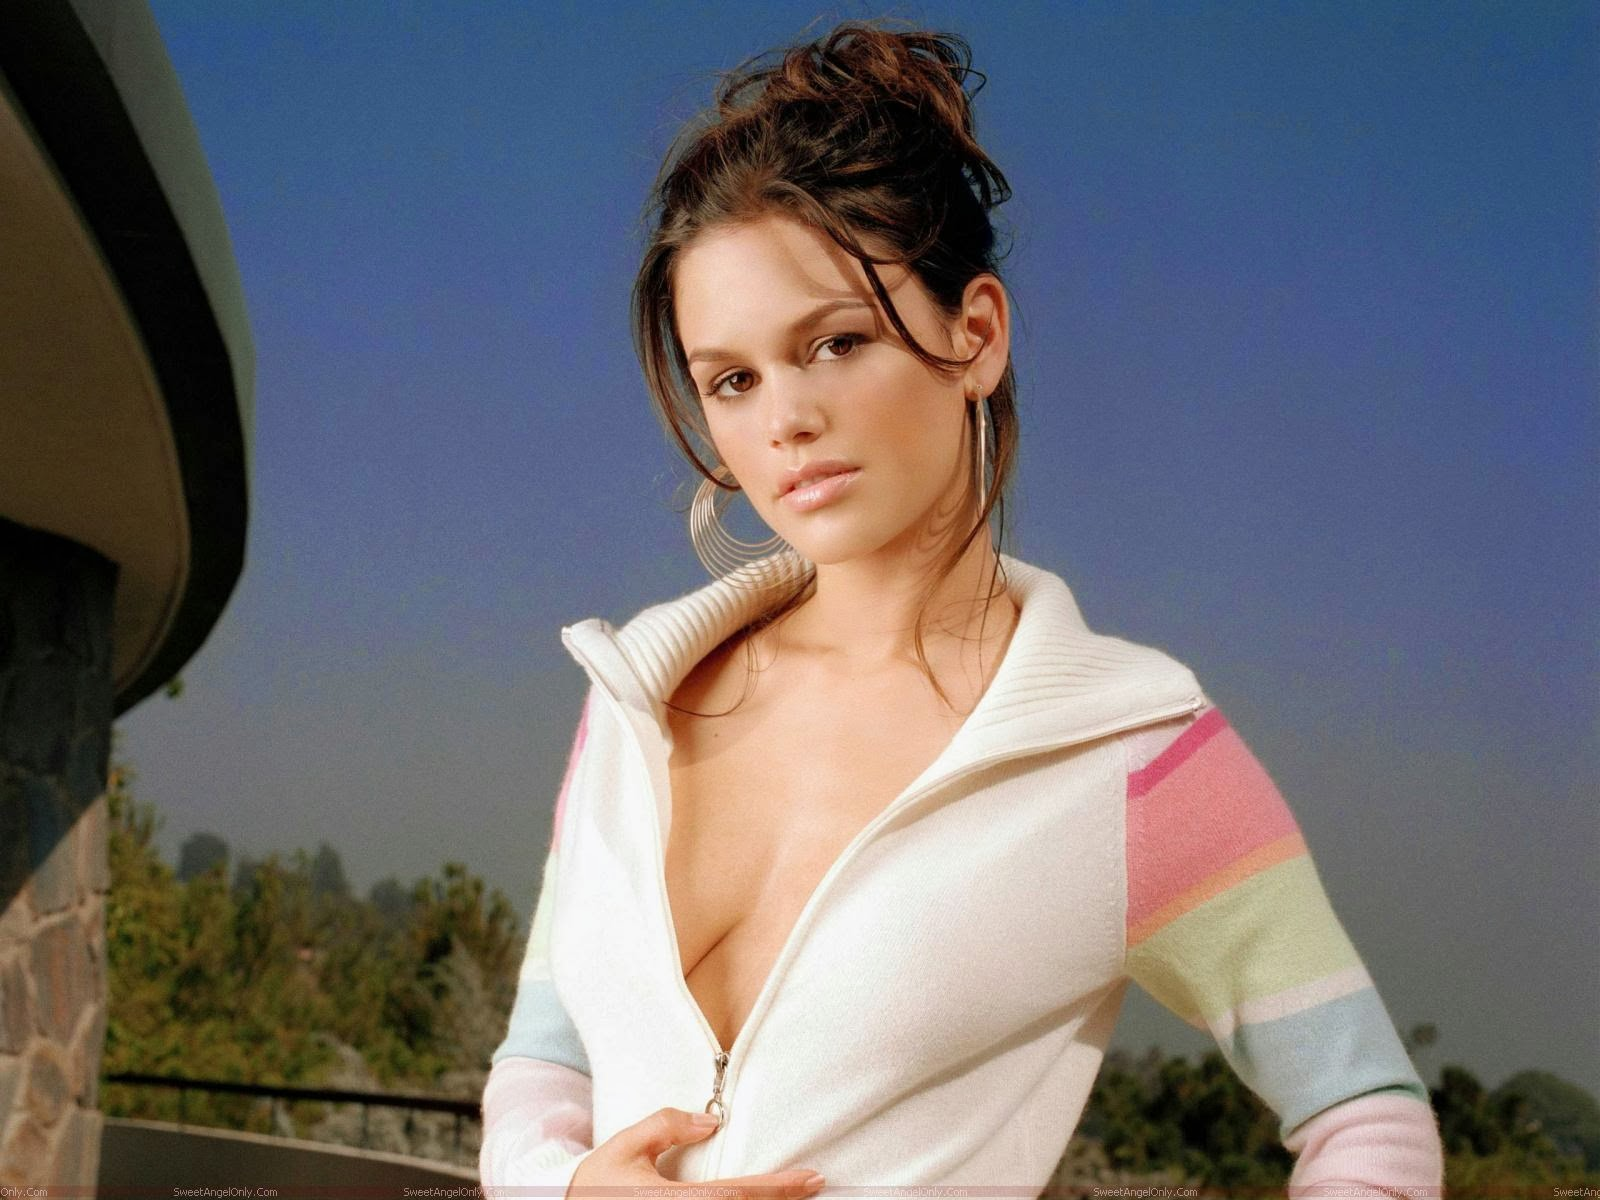 rachel bilson latest wallpapers 2013 - photo #17